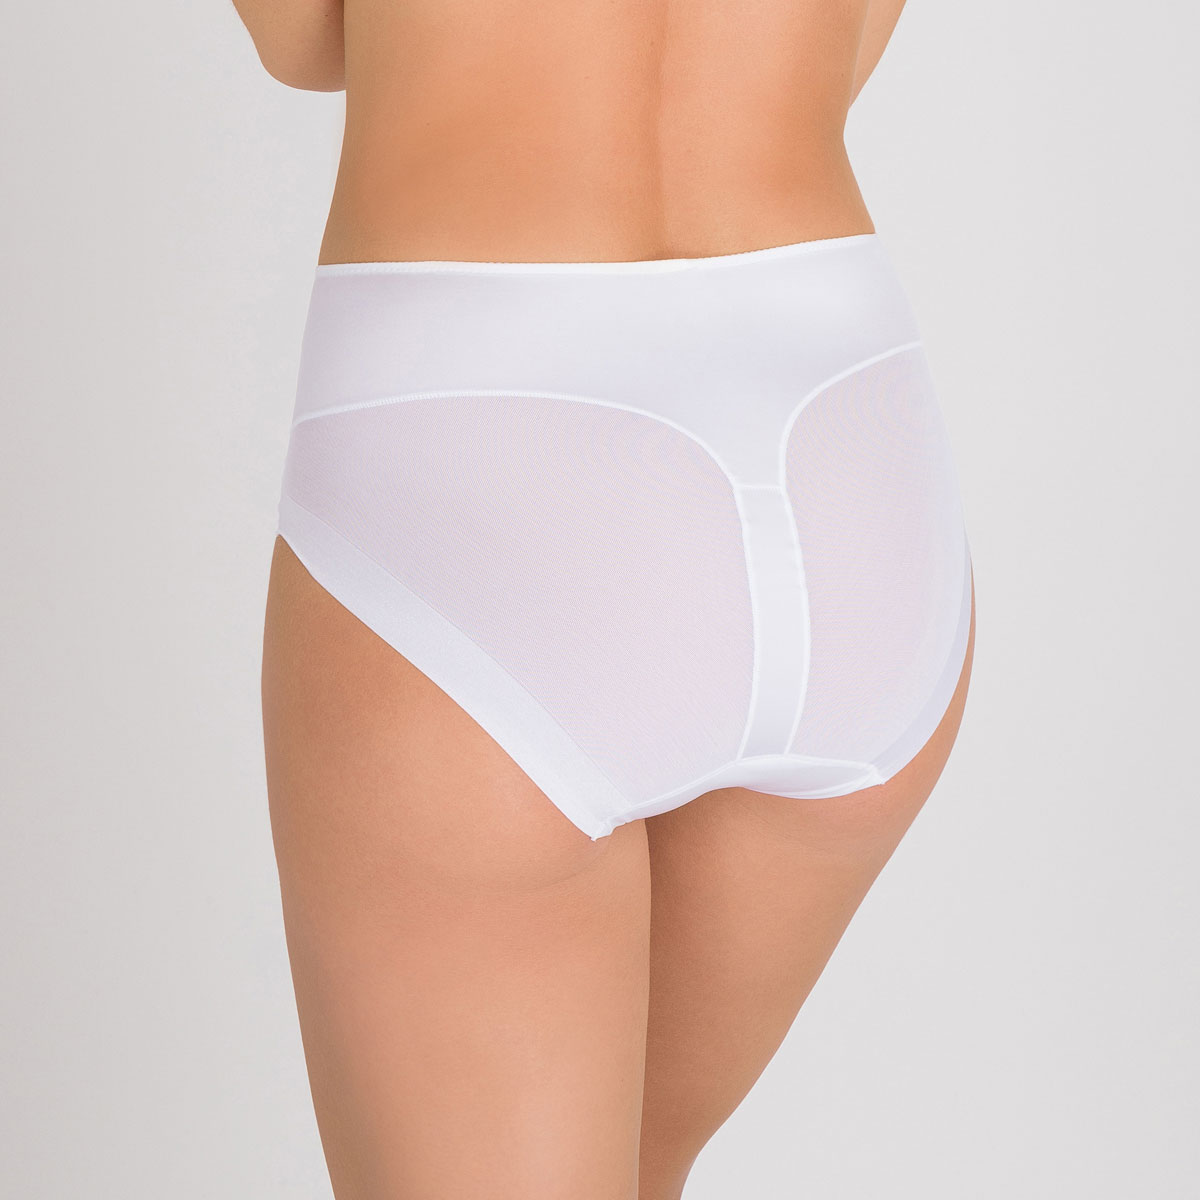 Invisible Shaping Maxi Brief in White – Perfect Silhouette-PLAYTEX